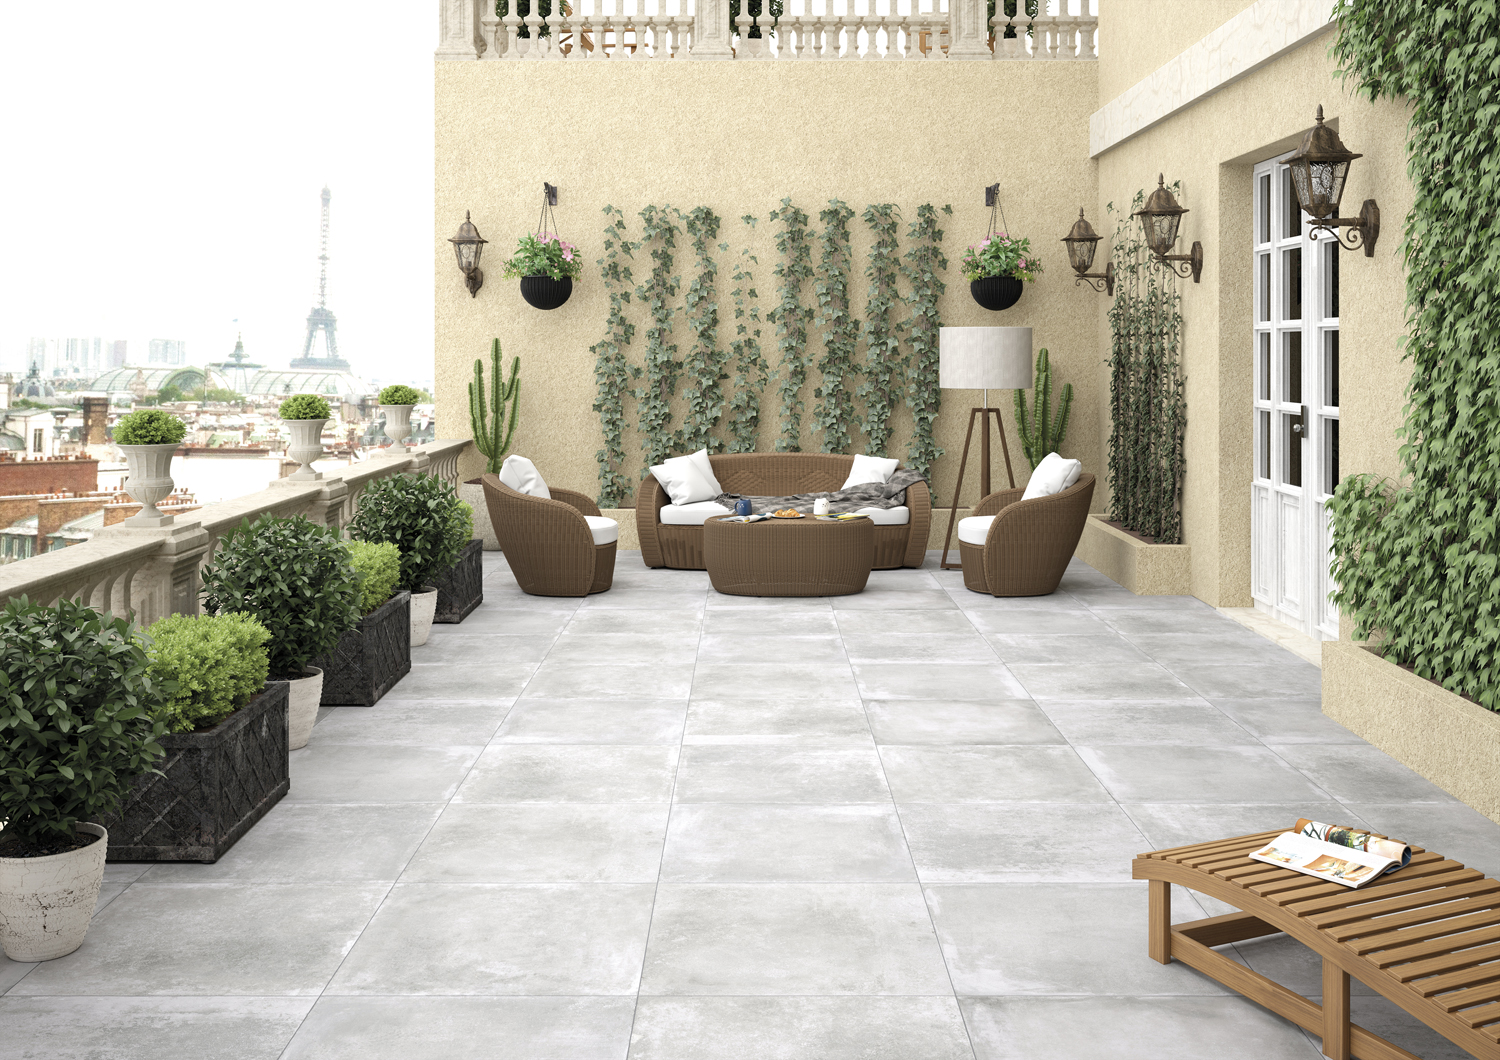 Tile of Spain in Outdoor Spaces | Tile of Spain USA